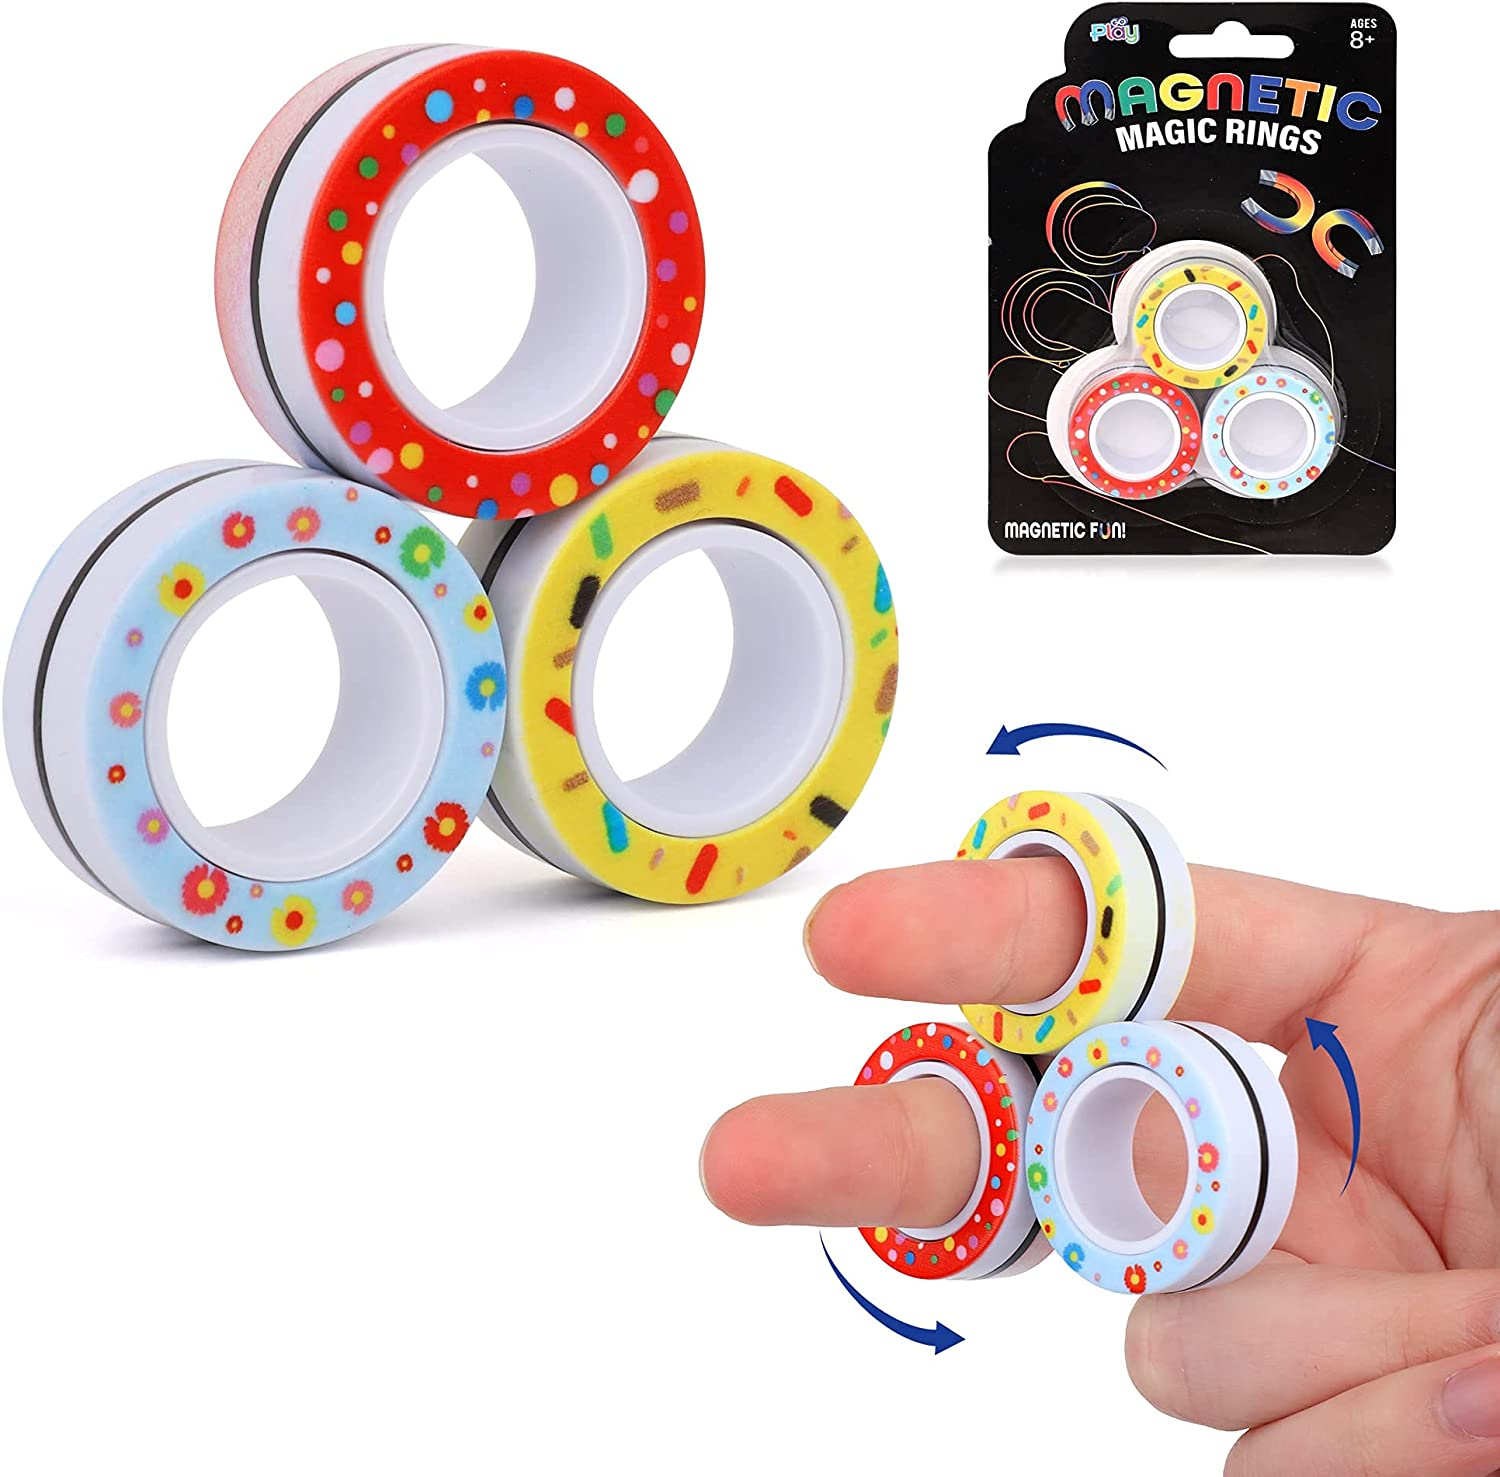 Go Play Magnetic Magic Fidget Toy Stress T Relief Pack latest 3 New life Rings